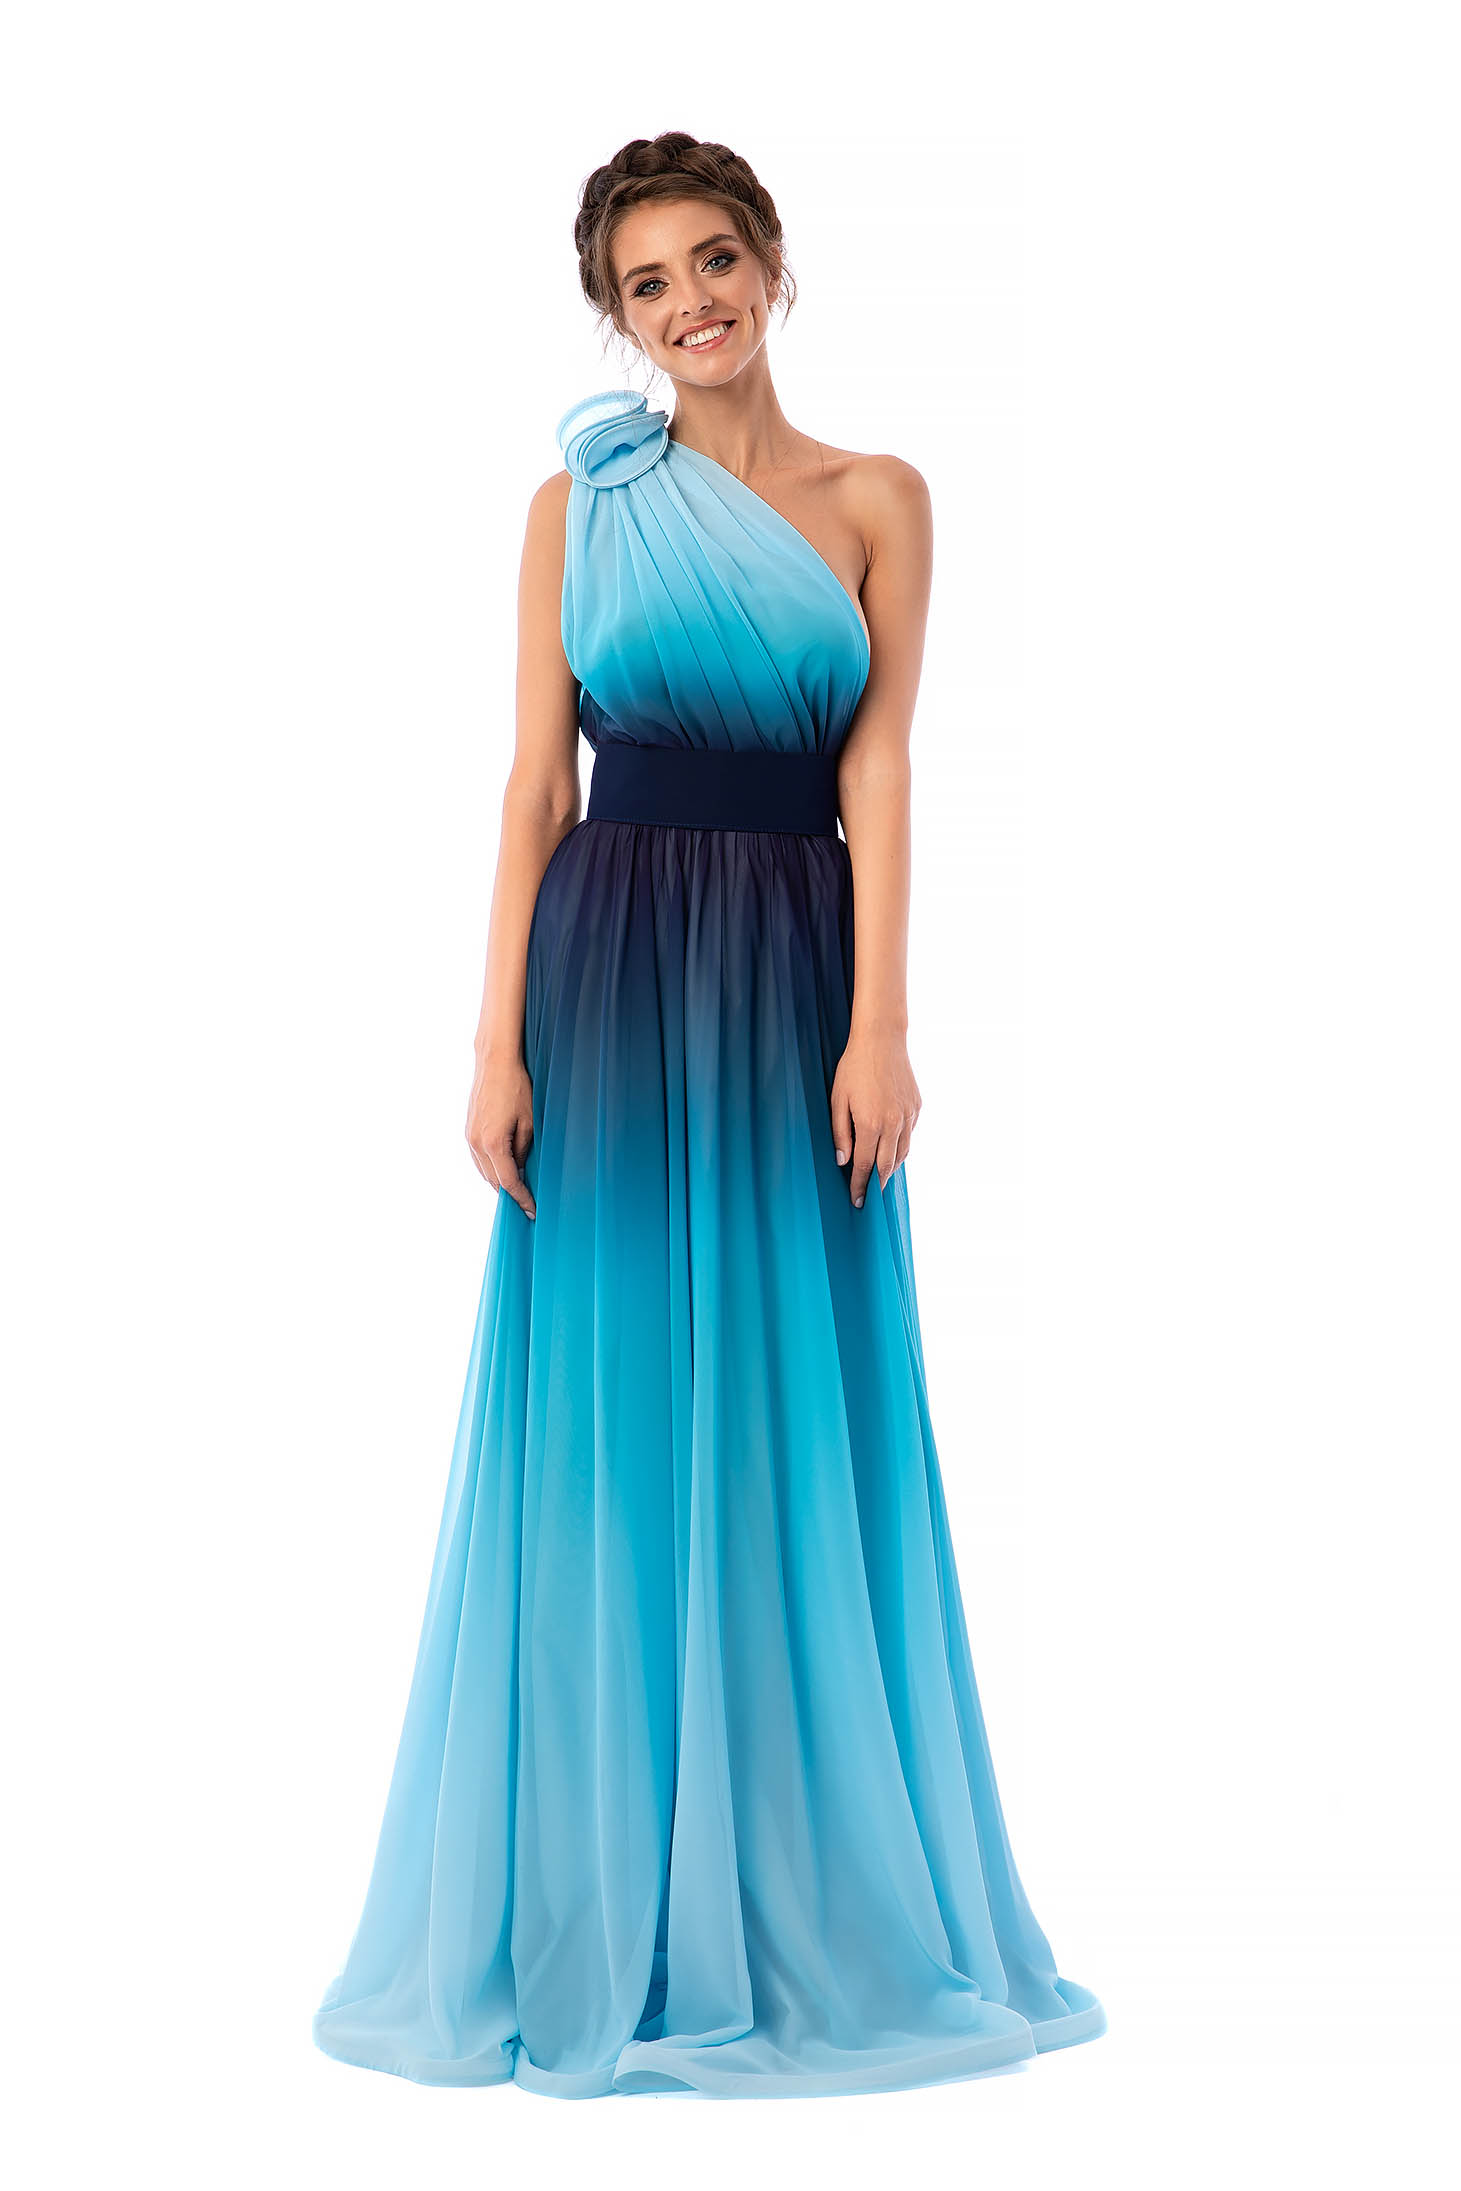 Ana Radu lightblue dress luxurious long one shoulder detachable cord airy fabric degrade